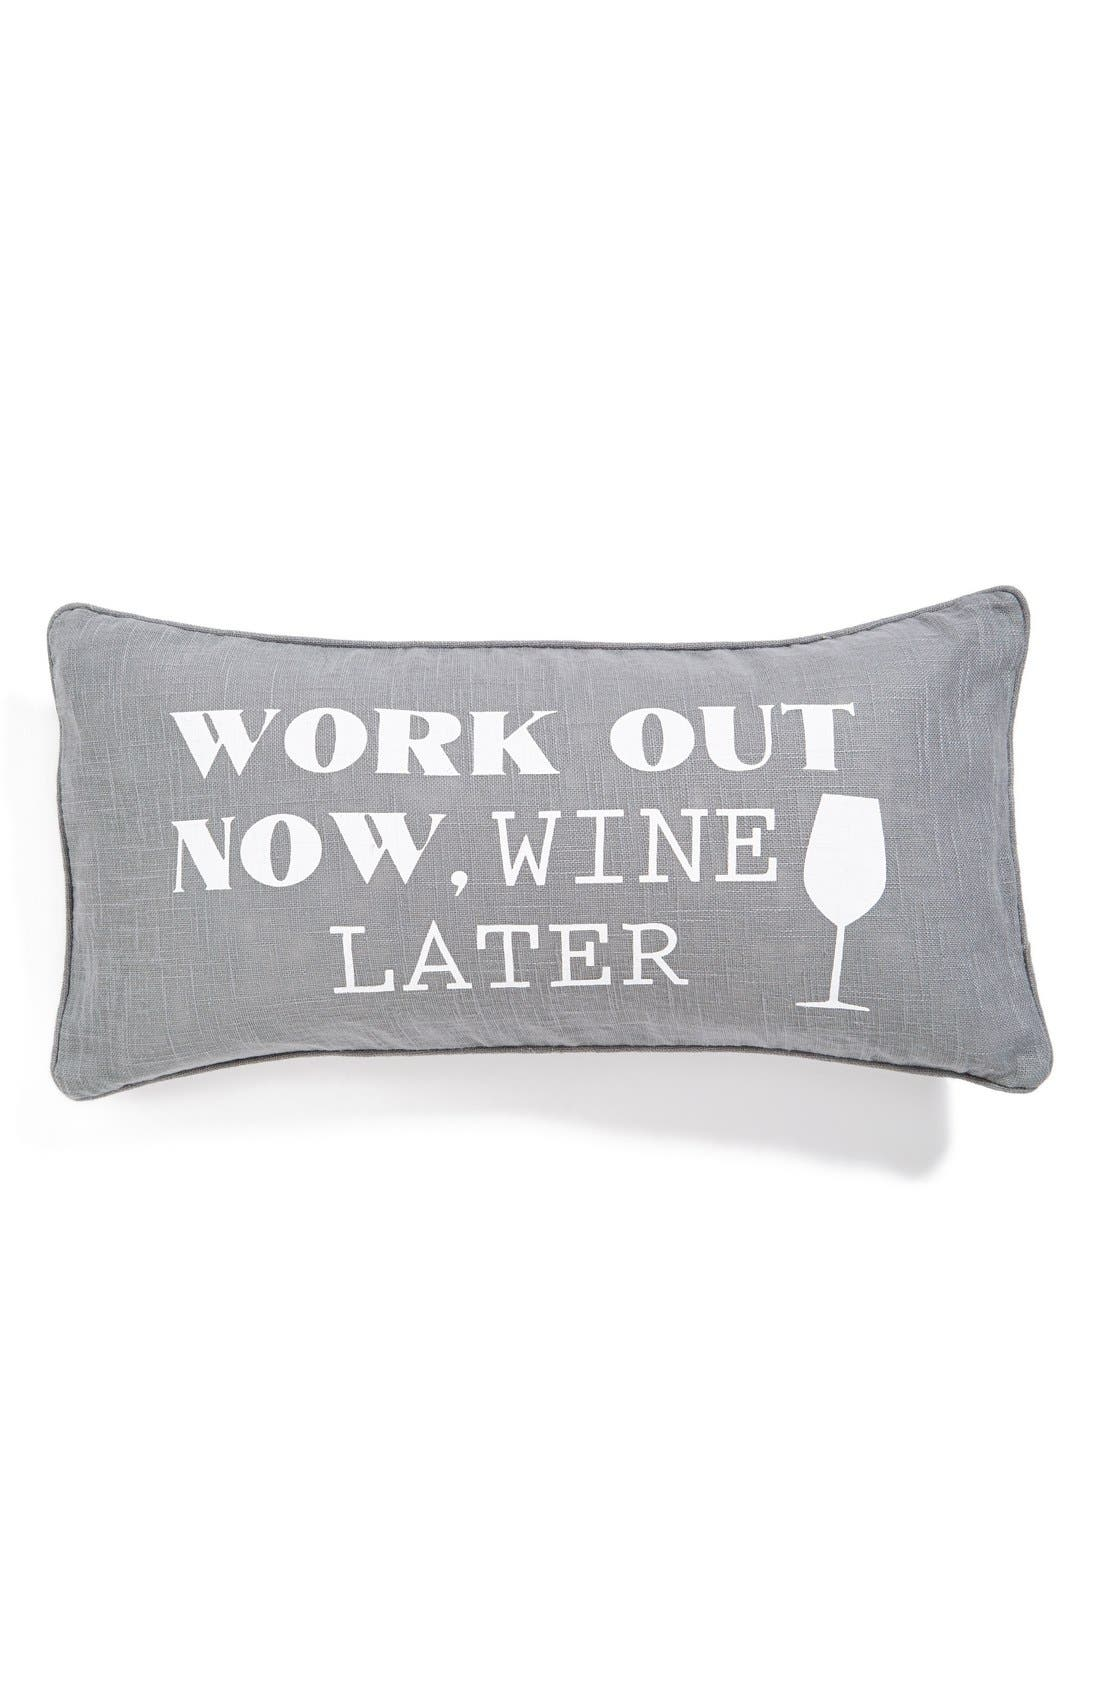 LEVTEX,                             'Work Out Now, Wine Later' Accent Pillow,                             Main thumbnail 1, color,                             020